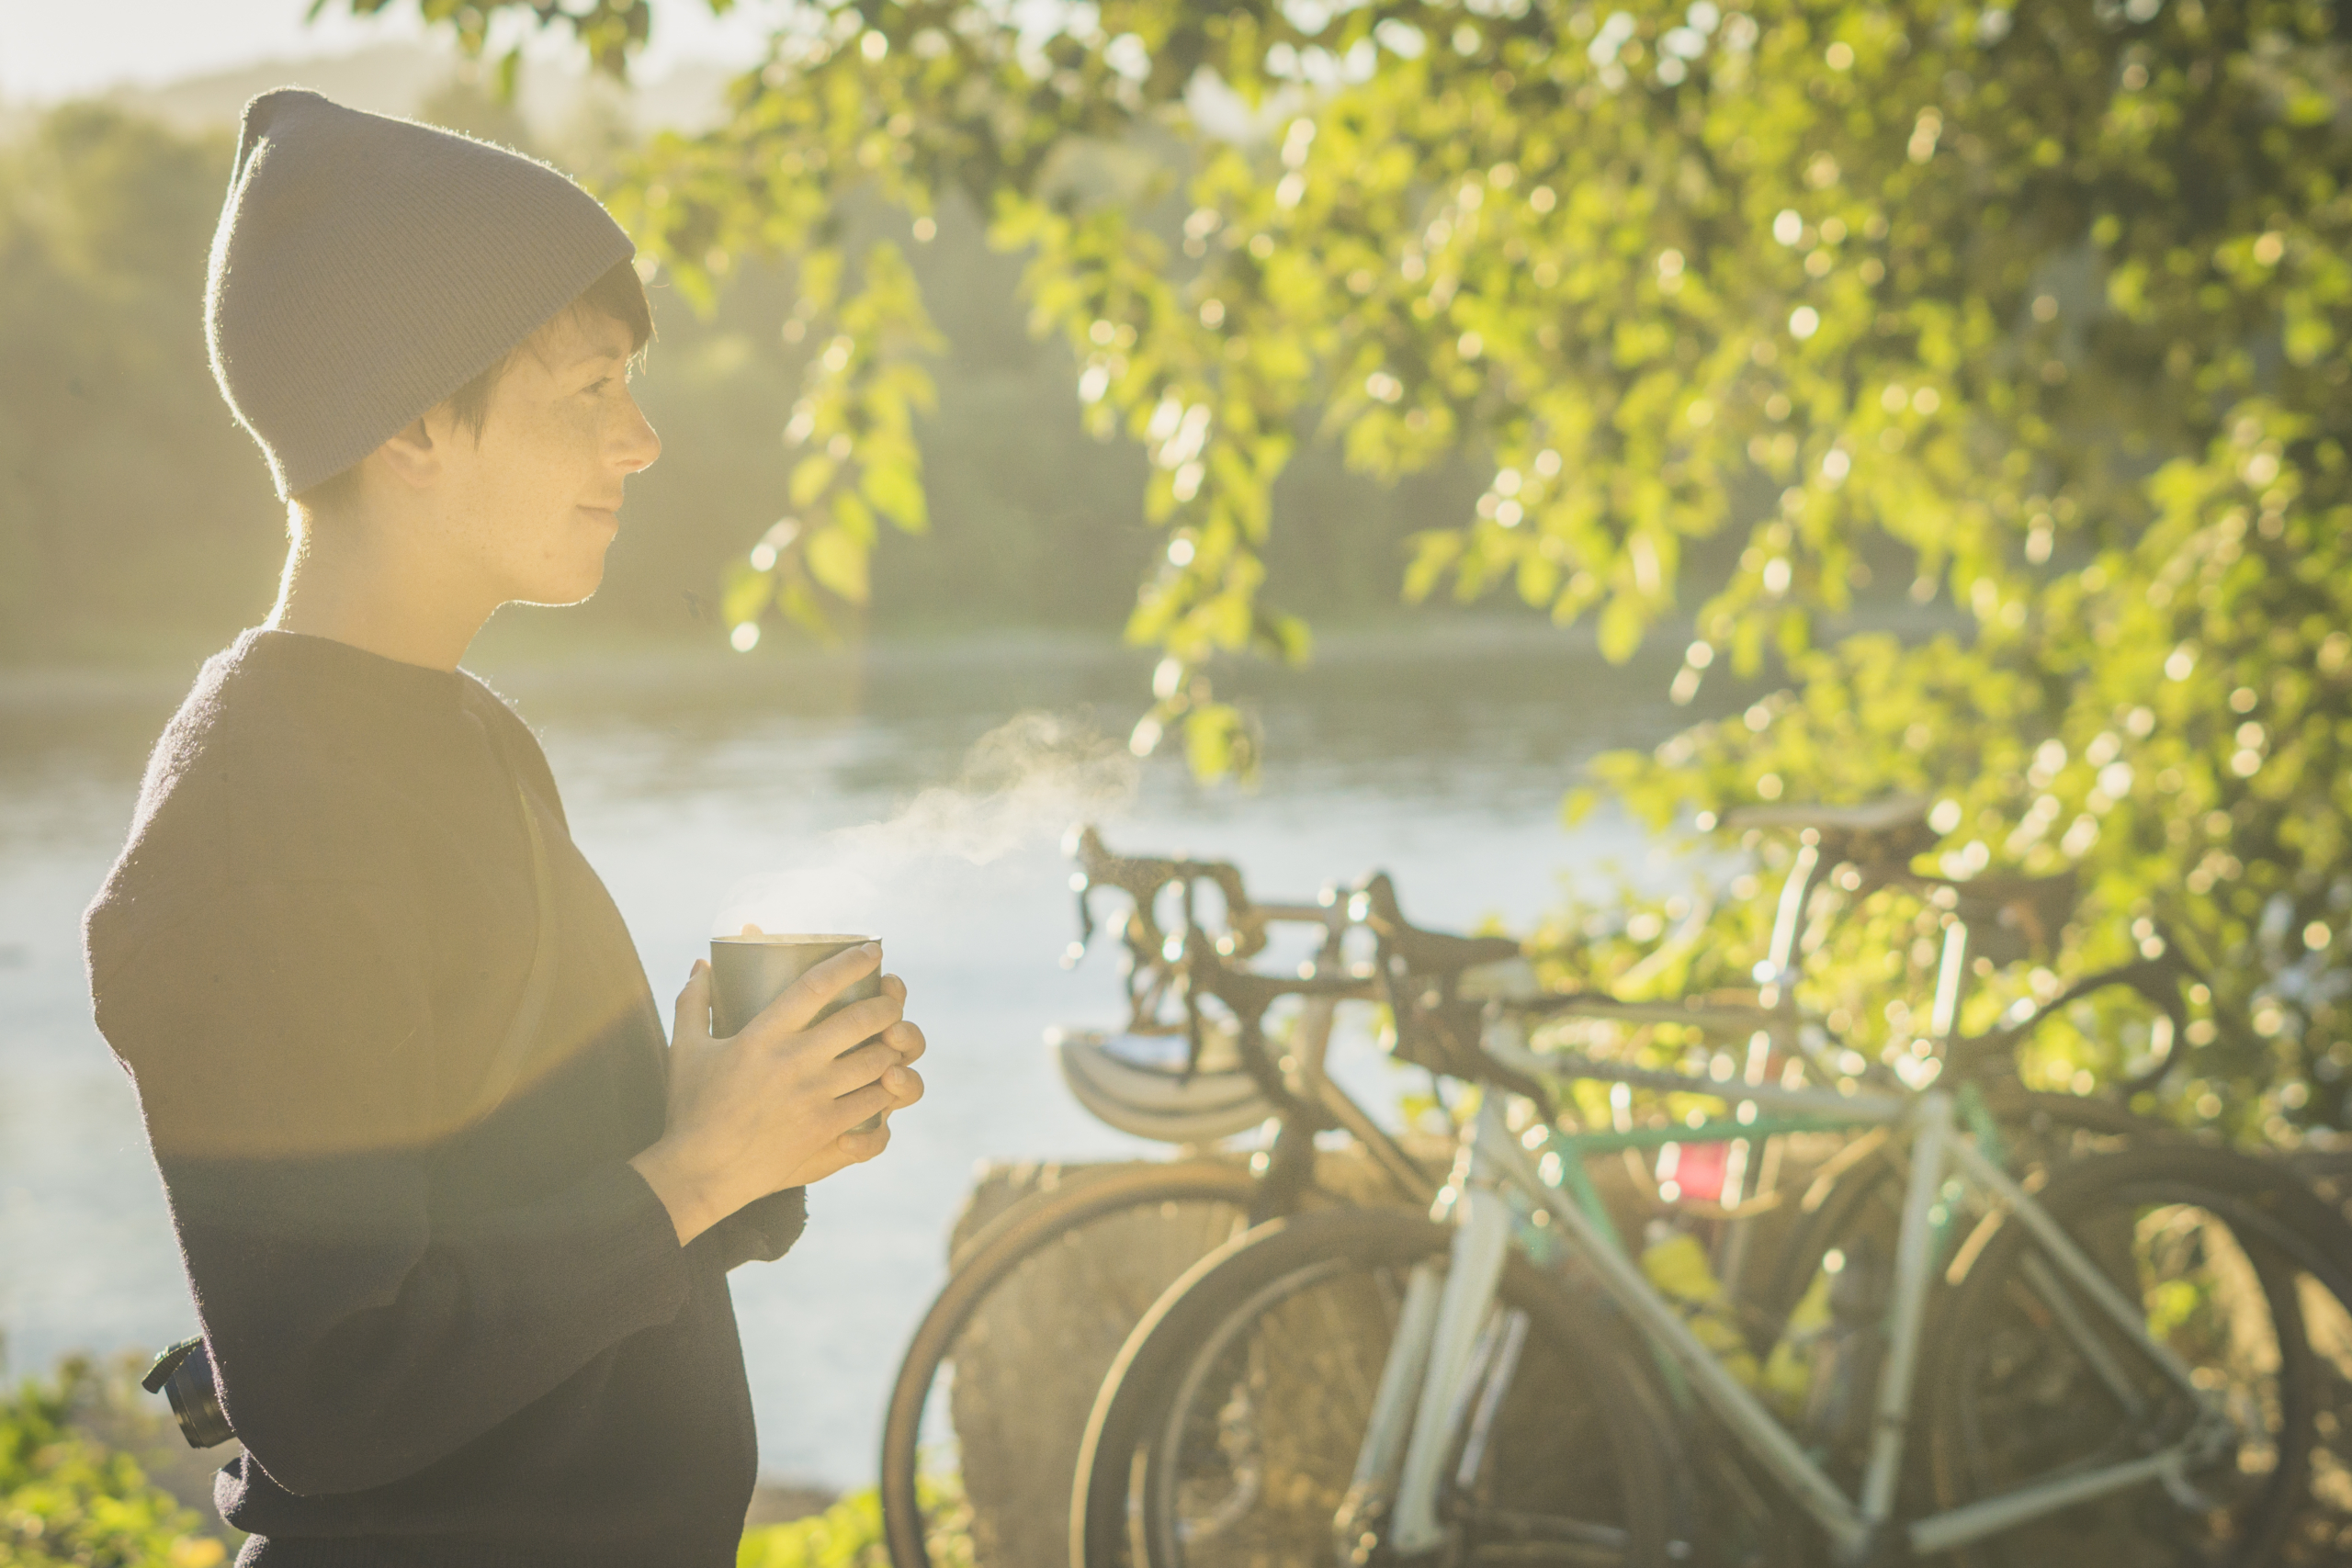 Woman in the morning sun with bikes and river in the background